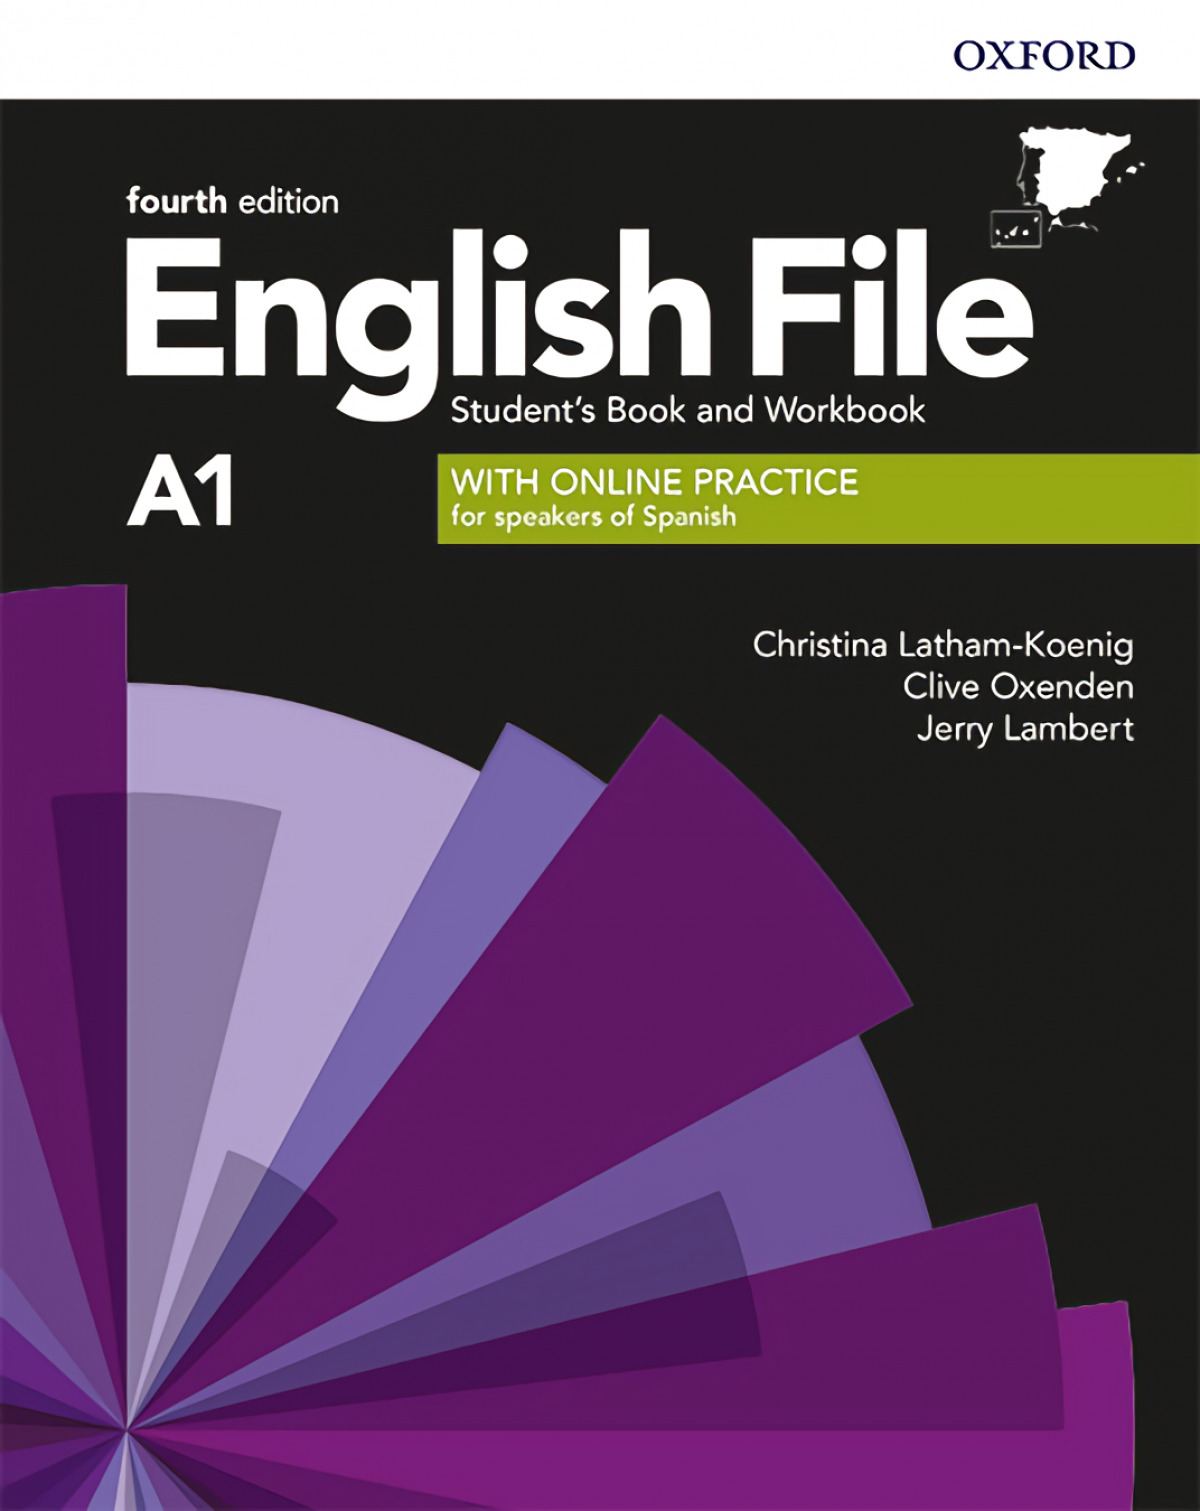 ENGLISH FILE A1 BEGINNER STUDENT S WORKBOOK KEY WITH ONLINE PRACTICE 2019 9780194057950